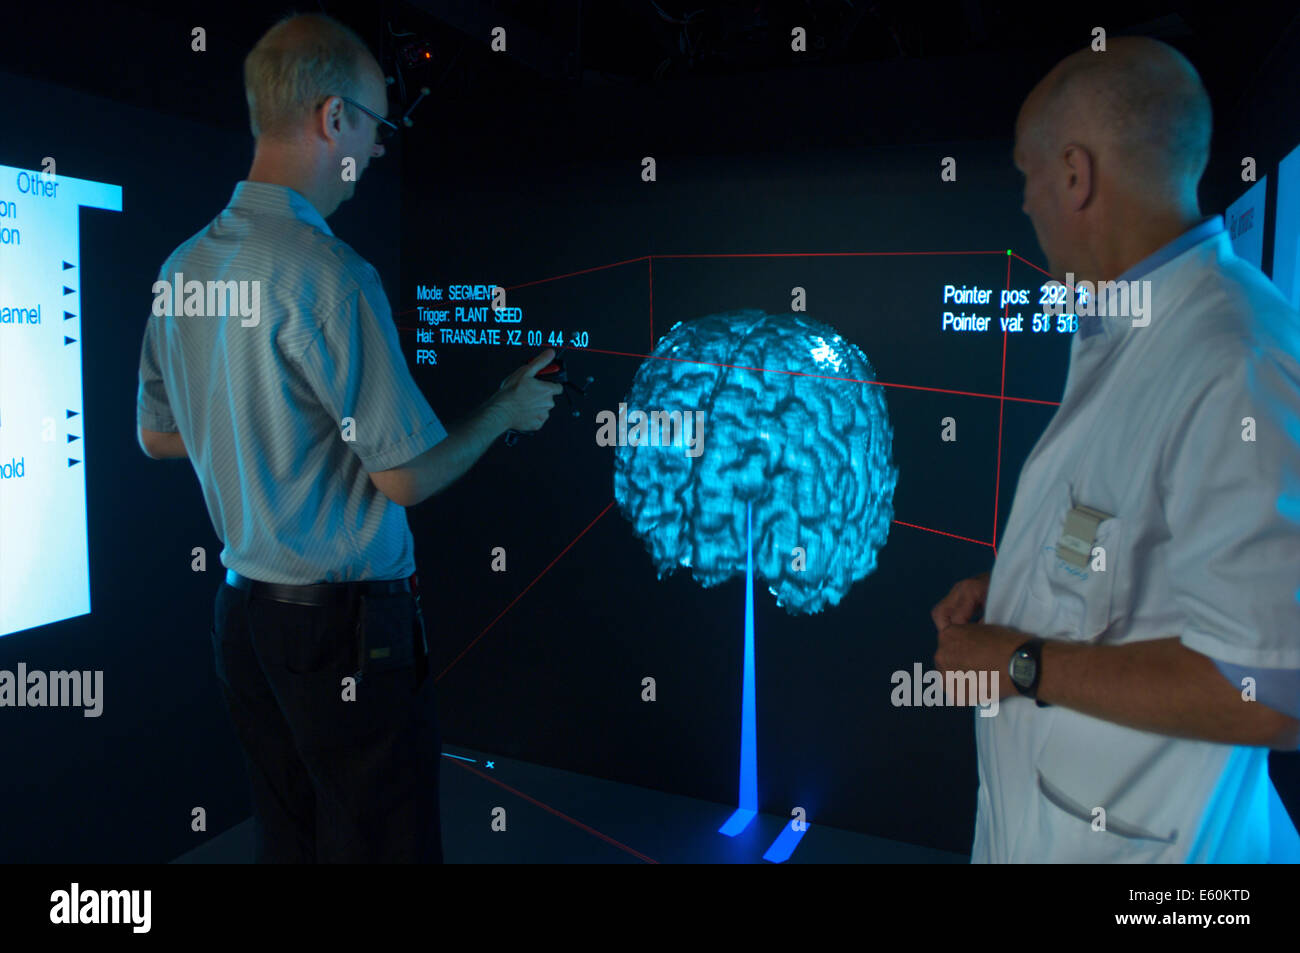 Technician helping a medical specialist with a virtual brain research calibration who is doing research on Alzheimers - Stock Image